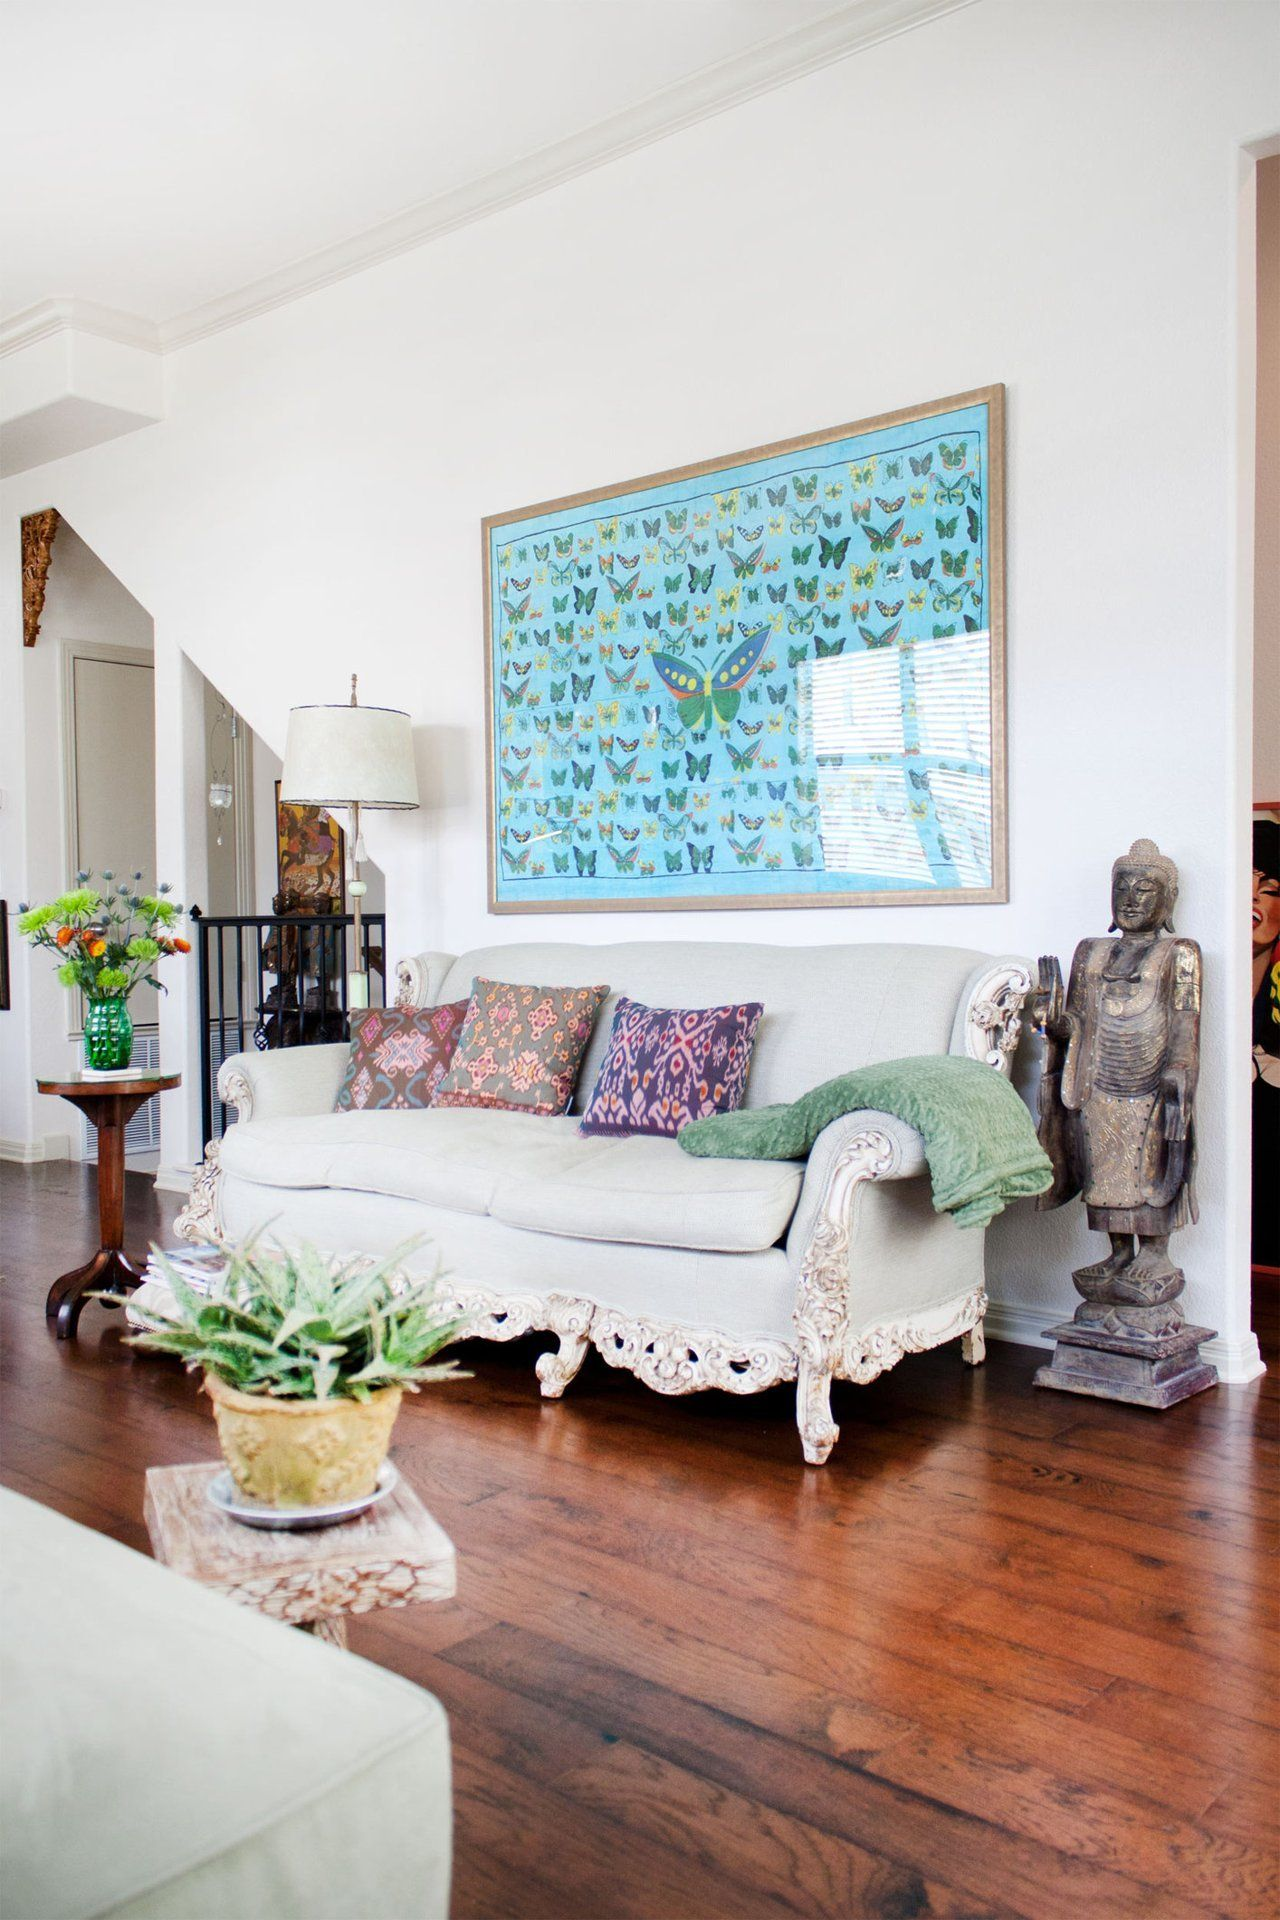 Townhouse Living Room Design: Amy Campbell's Travel-Inspired Townhouse